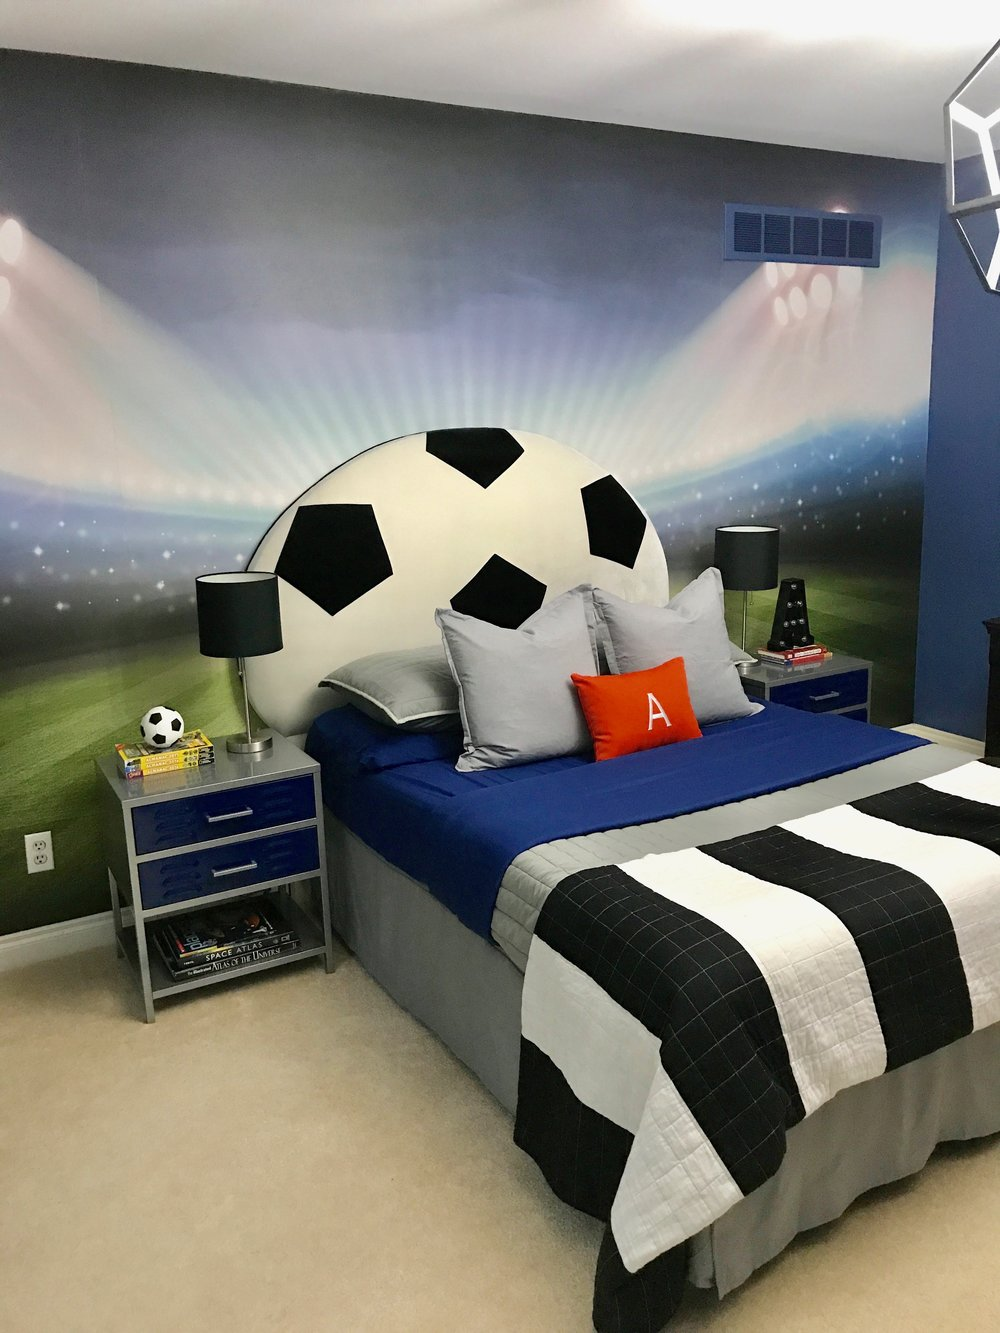 Decor for Kids, Dania Farhat, Soccer Boys Bedroom